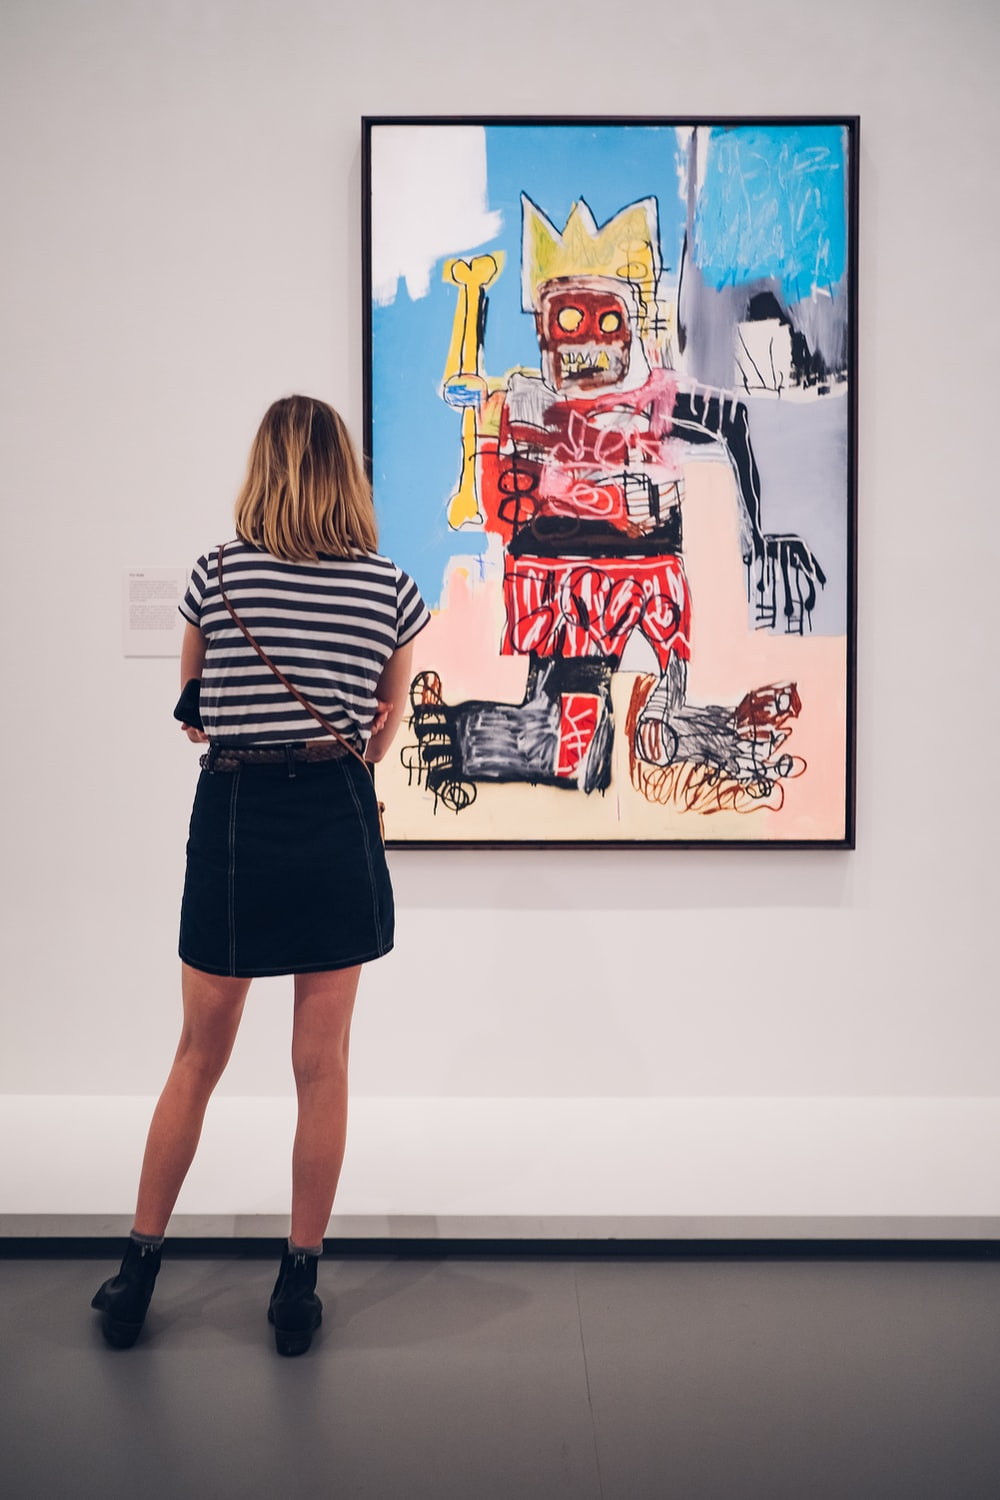 woman in black and white striped shirt standing in front of abstract painting